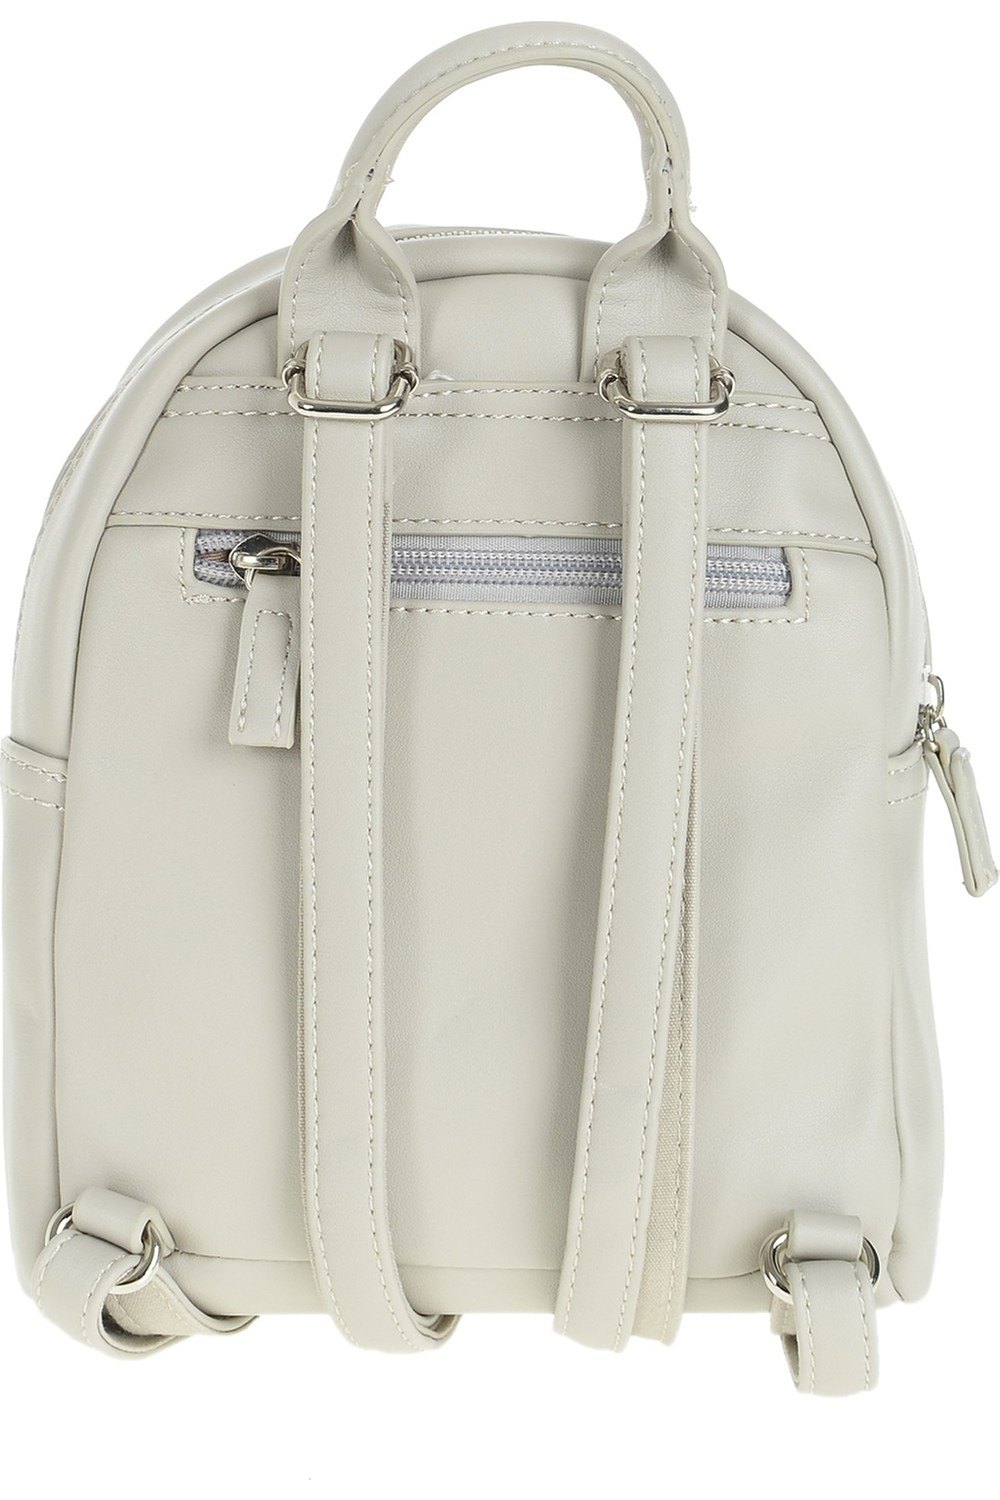 David Jones Women's Backpack